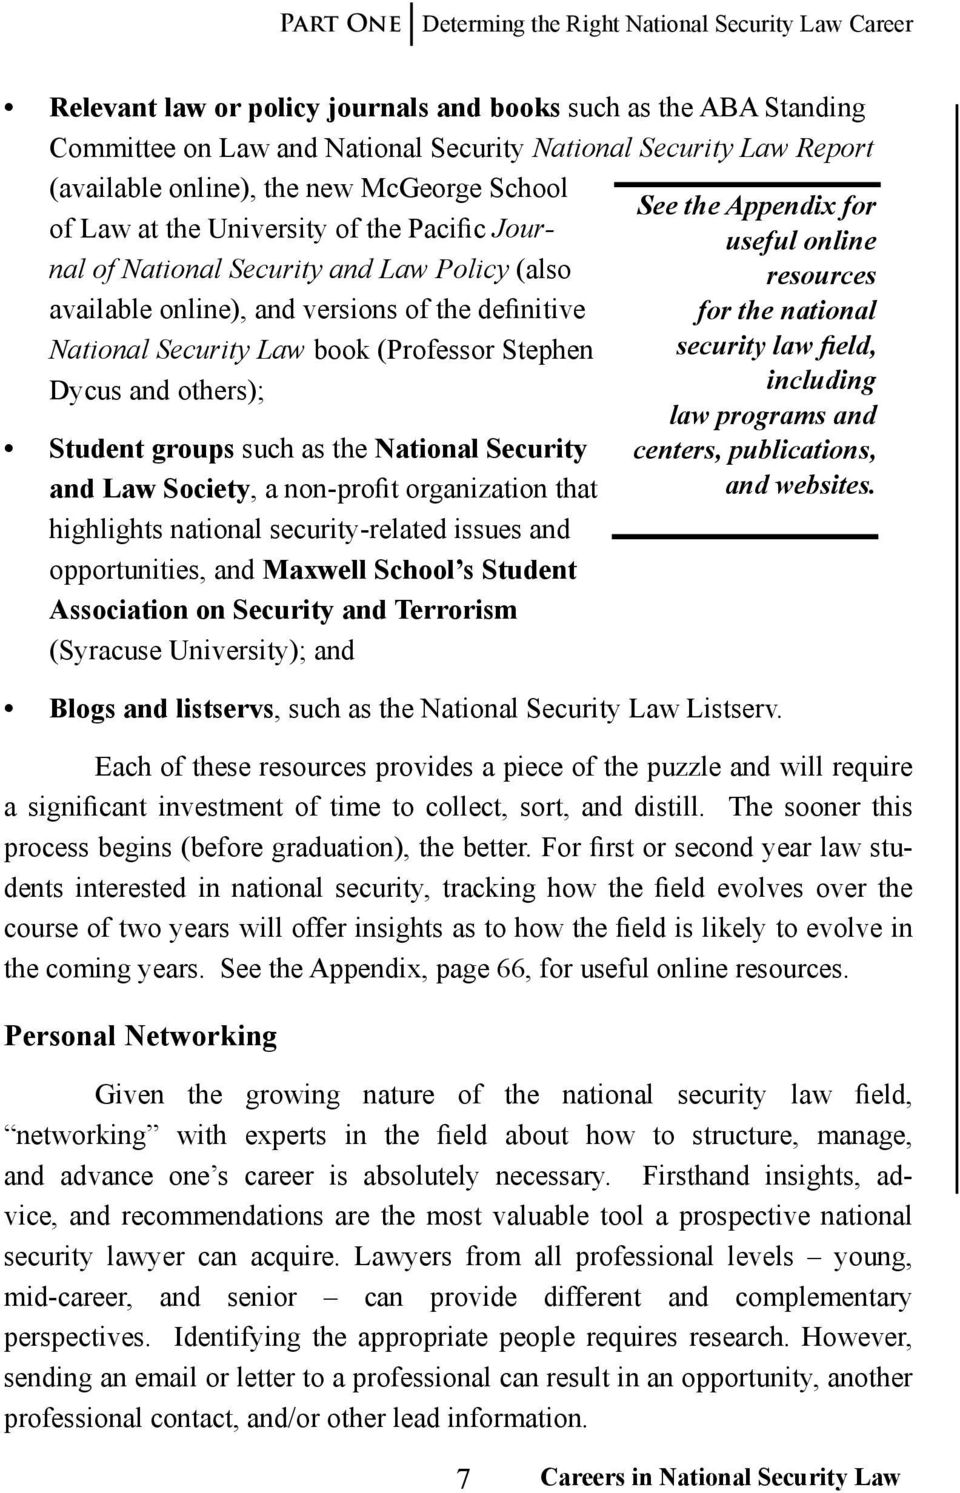 Security Law book (Professor Stephen Dycus and others); Student groups such as the National Security and Law Society, a non-profit organization that highlights national security-related issues and